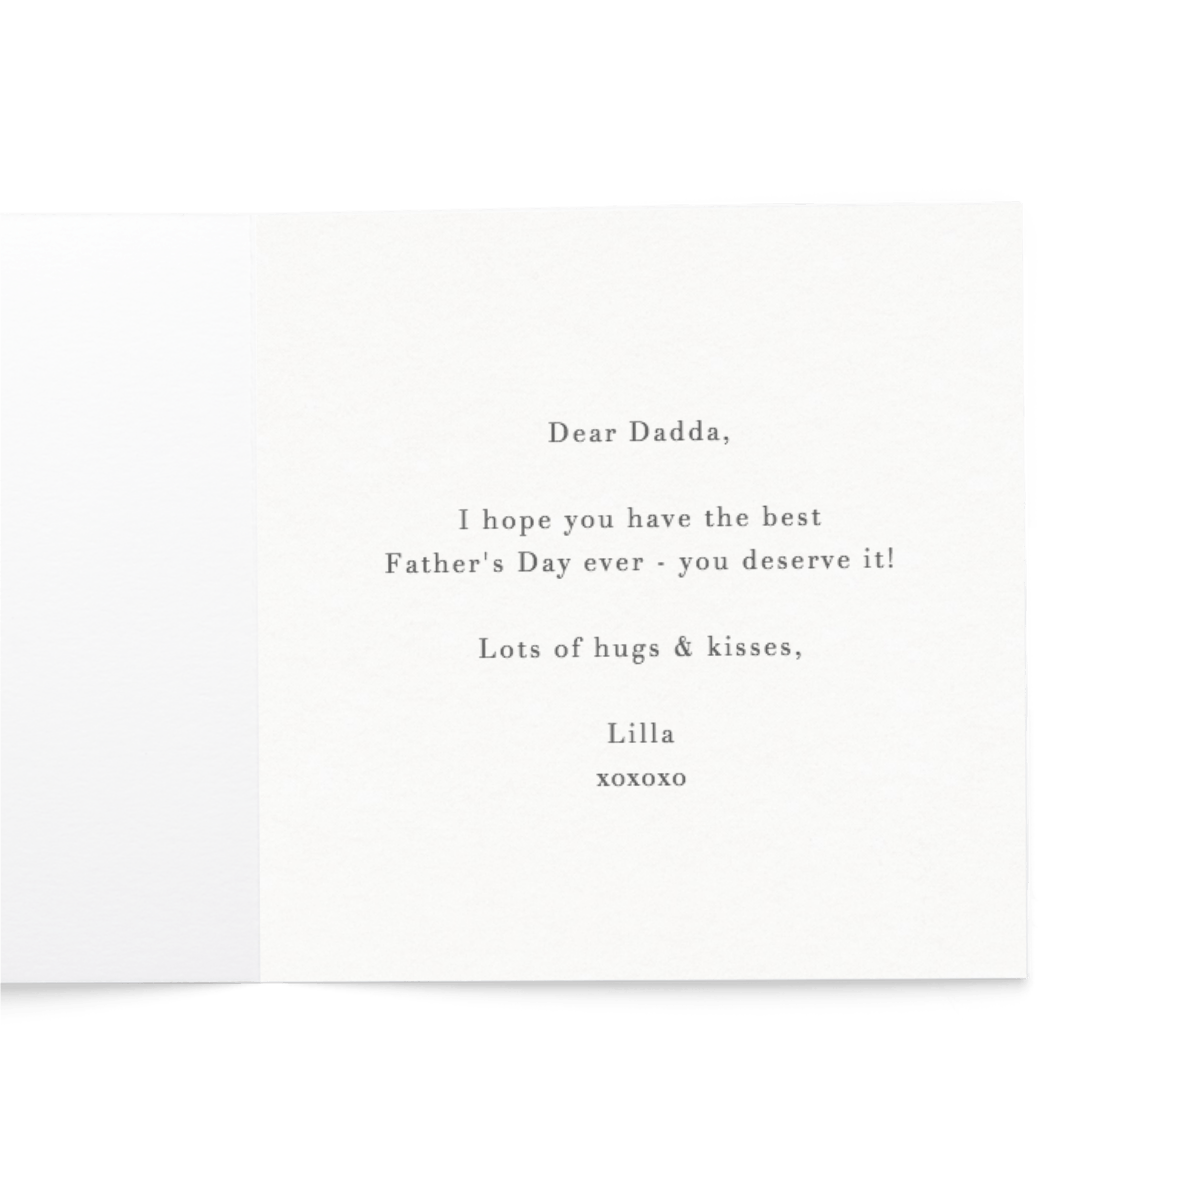 Https%3a%2f%2fwww.papier.com%2fproduct image%2f5976%2f21%2ffather s day photo card 1555 interieur 1463138652.png?ixlib=rb 1.1